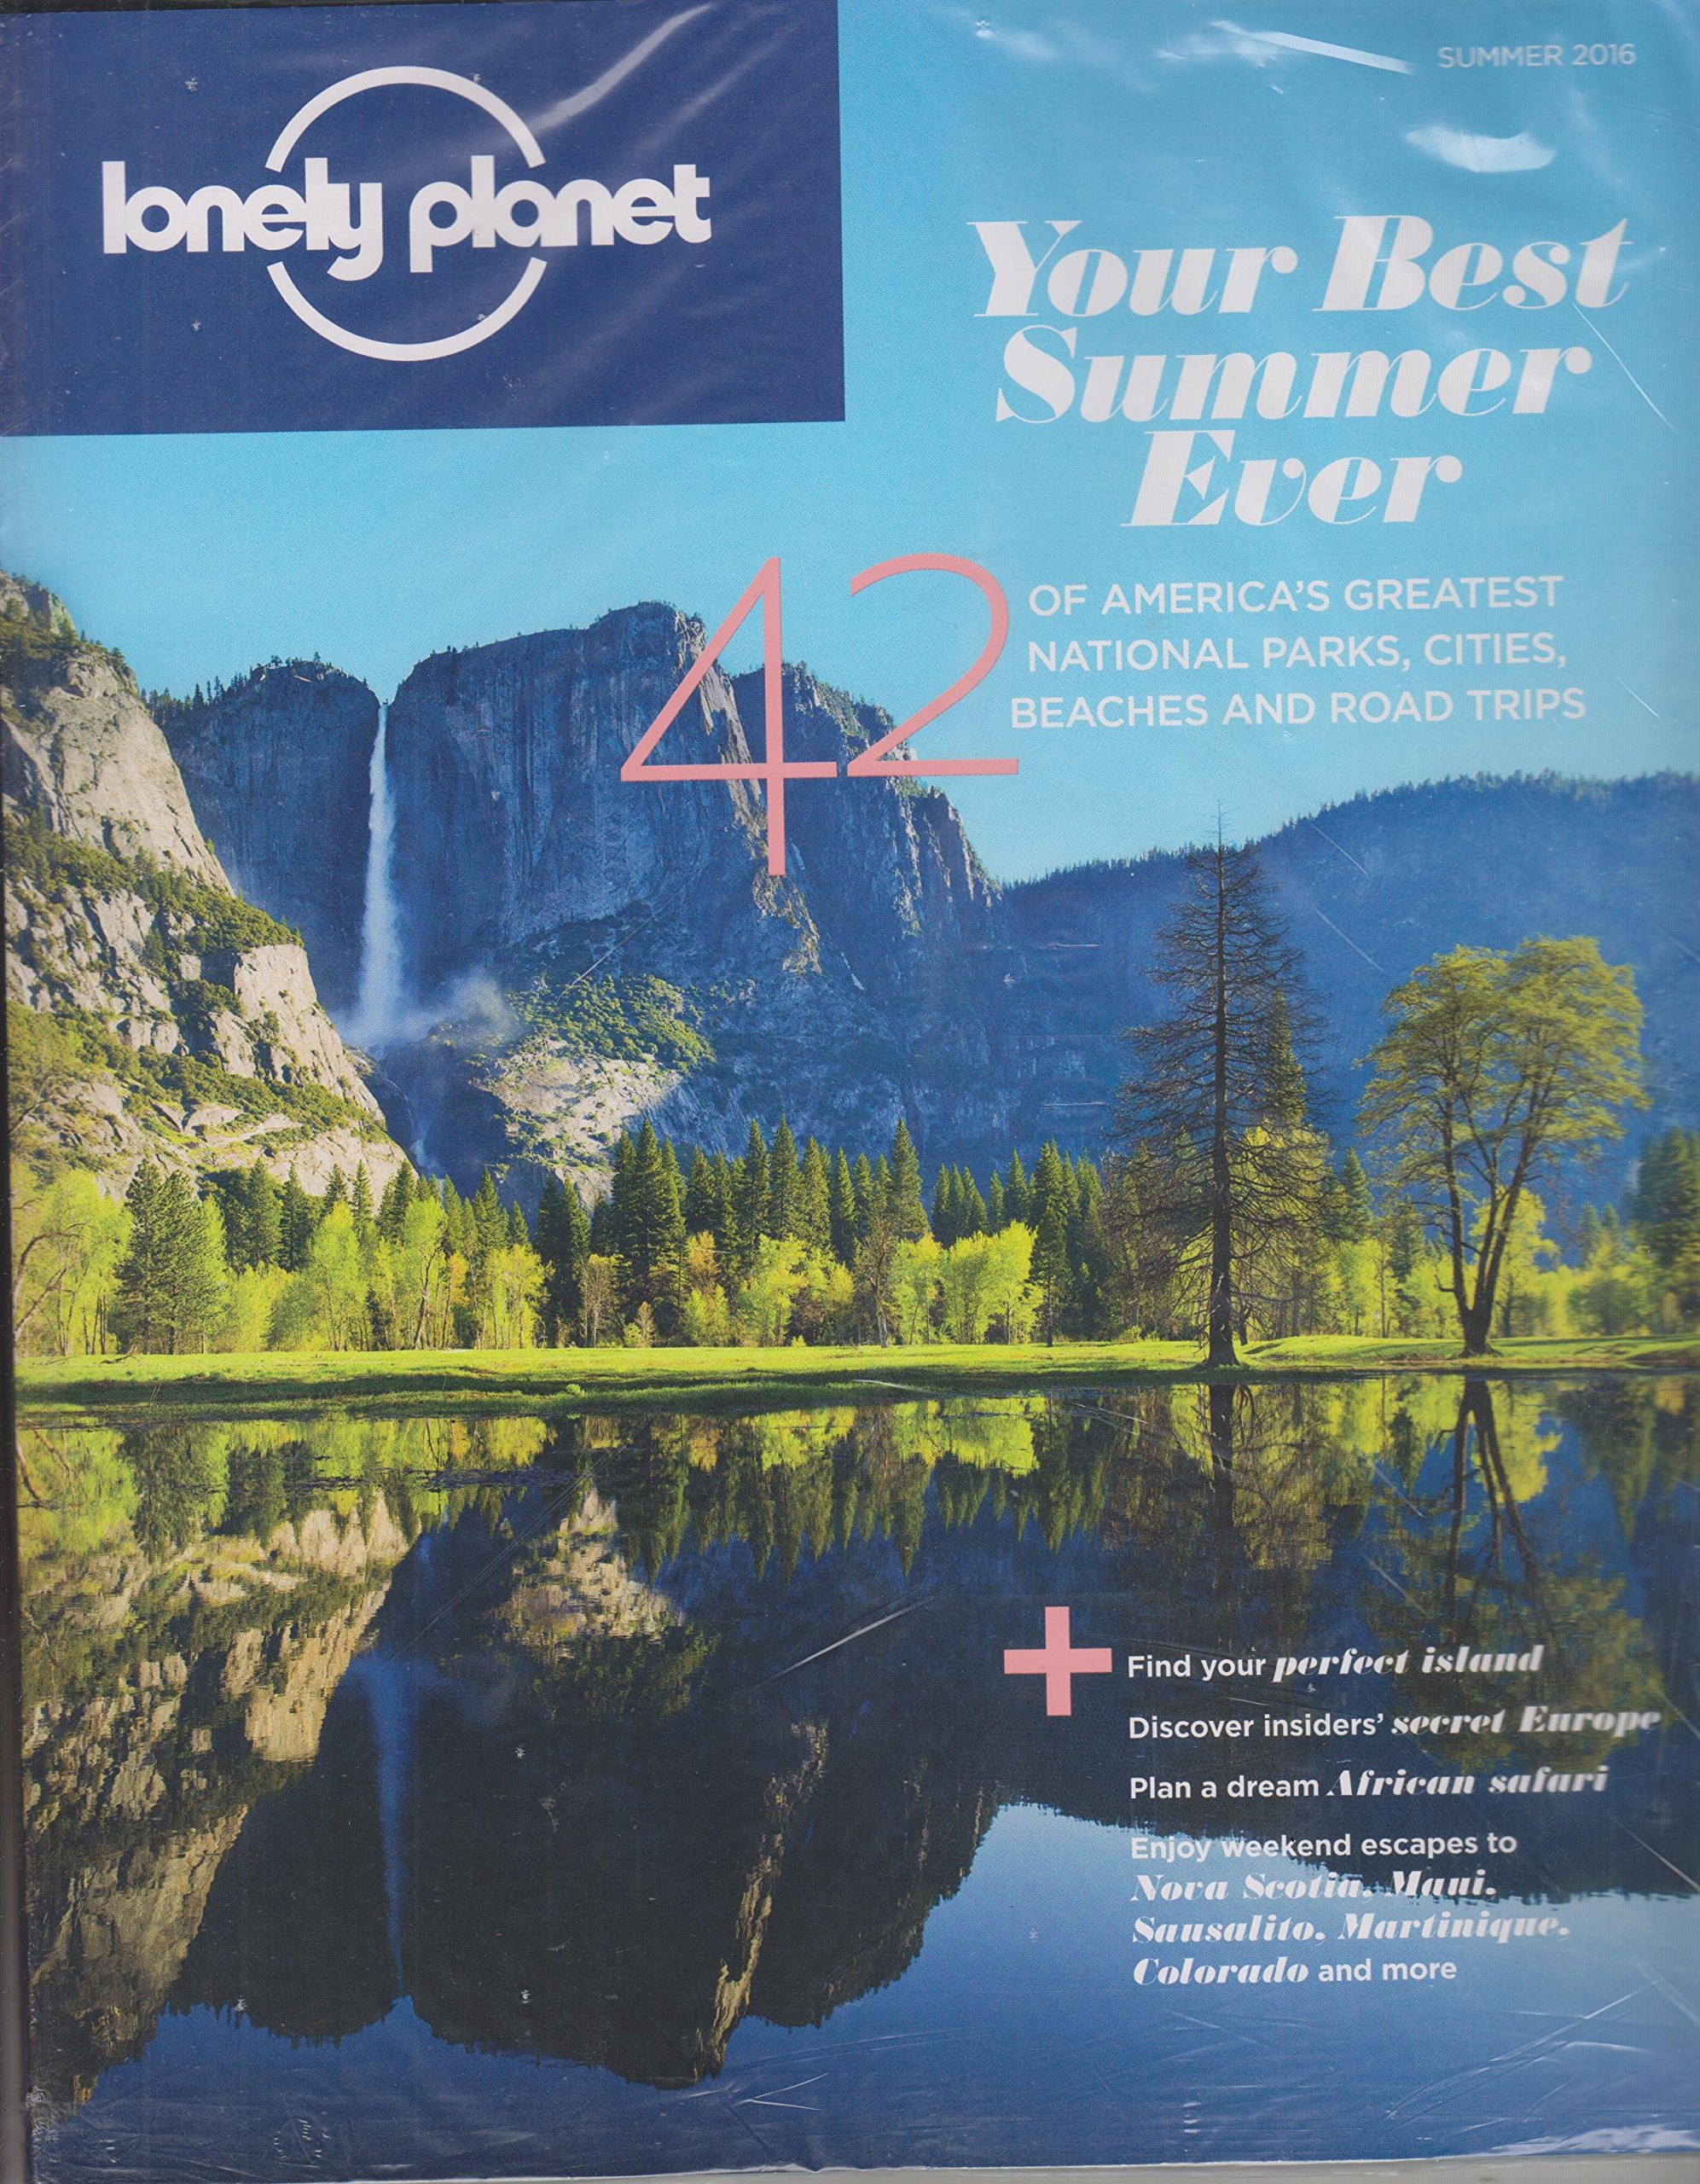 Download Lonely Planet Summer 2016 Your Best Summer Ever 42 of America's Greatest National Parks, Cities, Beaches and Road Trips PDF